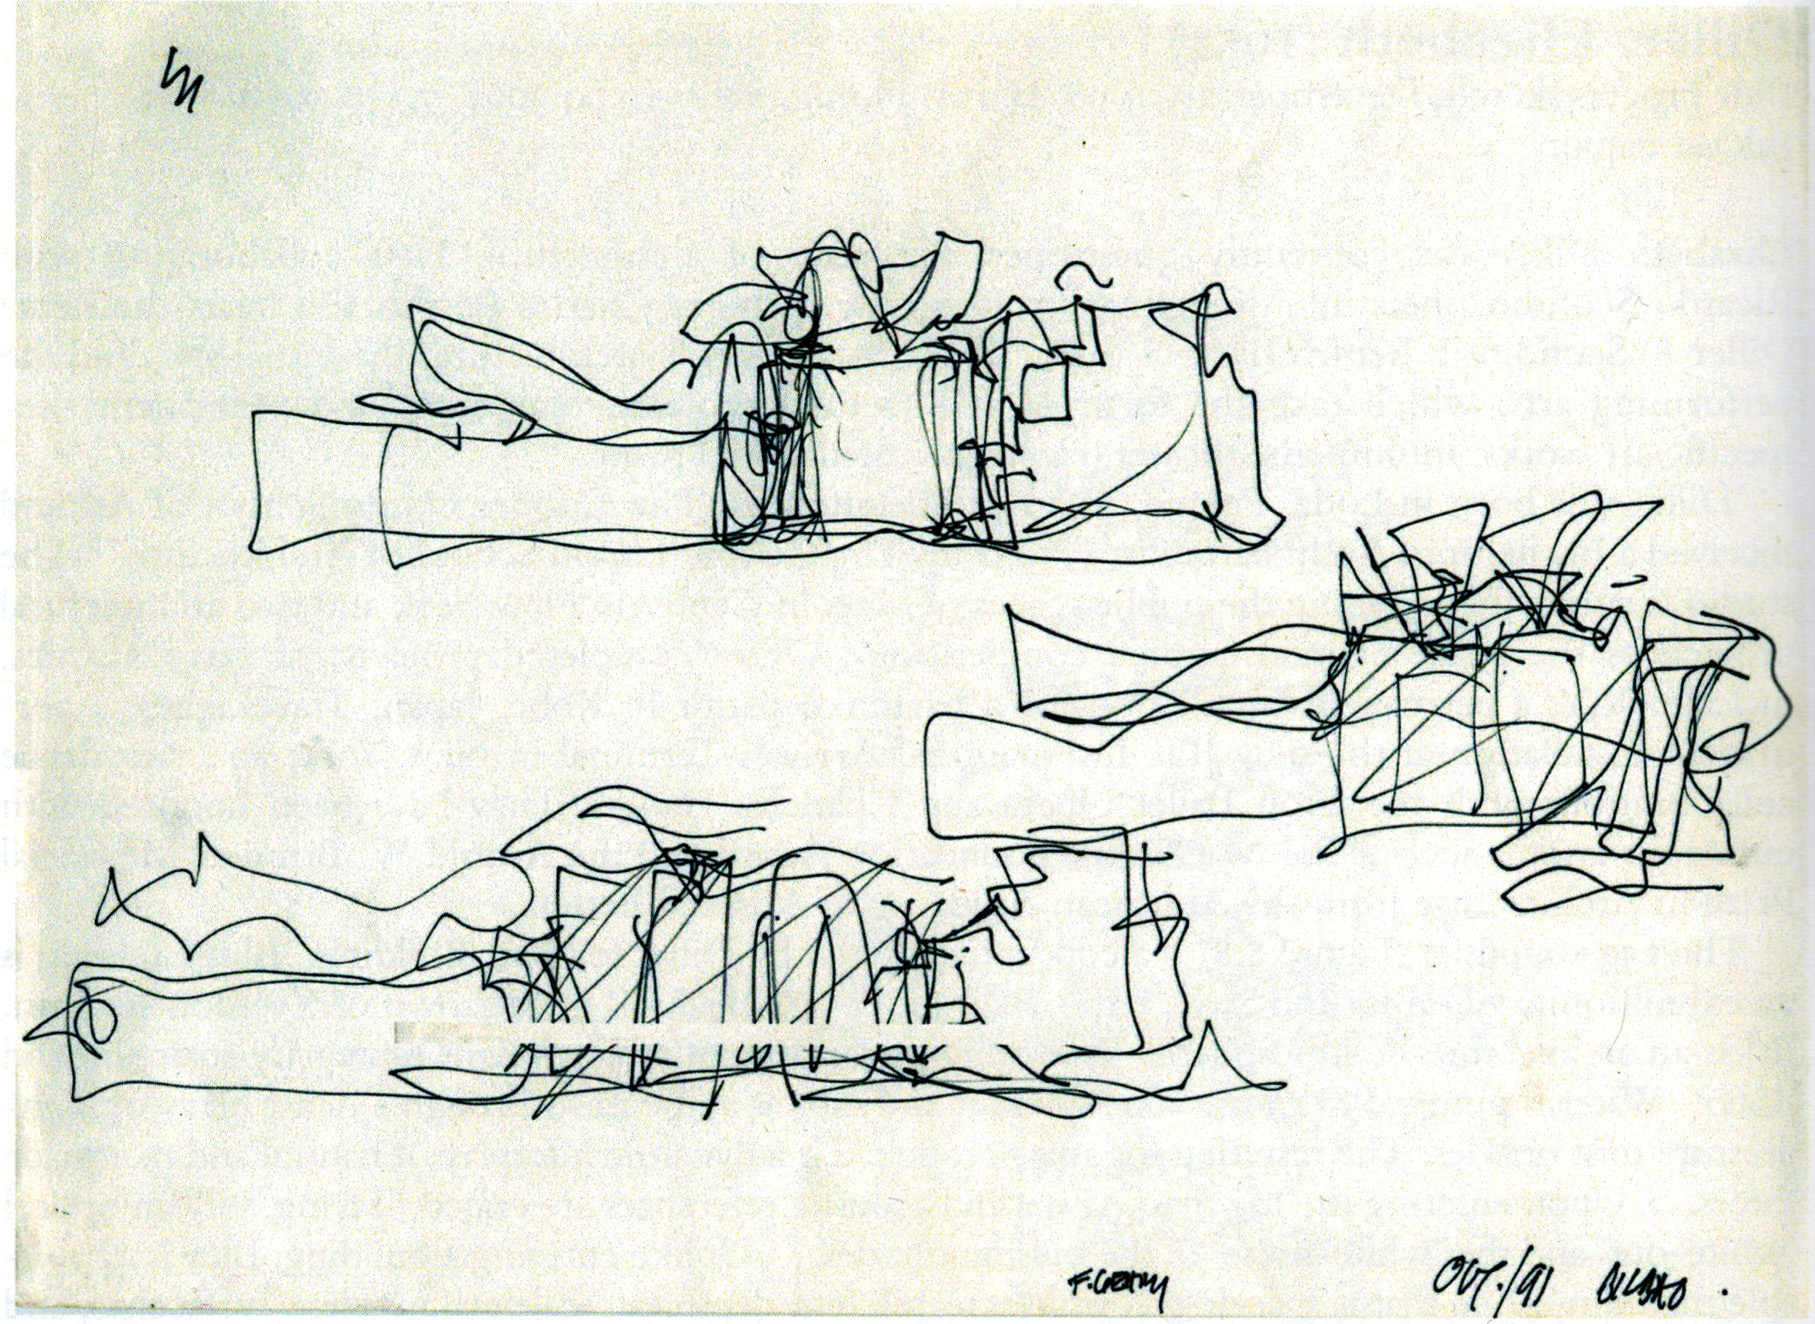 Gehry, Frank.  Process Elevation Sketches . October 1991. Ink on Paper: Guggenheim Museum, Bilbao, Spain. Architects' Drawings: A Selection of Sketches by World Famous Architects Through History . Amsterdam: Elsevier/Architectural, 2005. 226. Print.